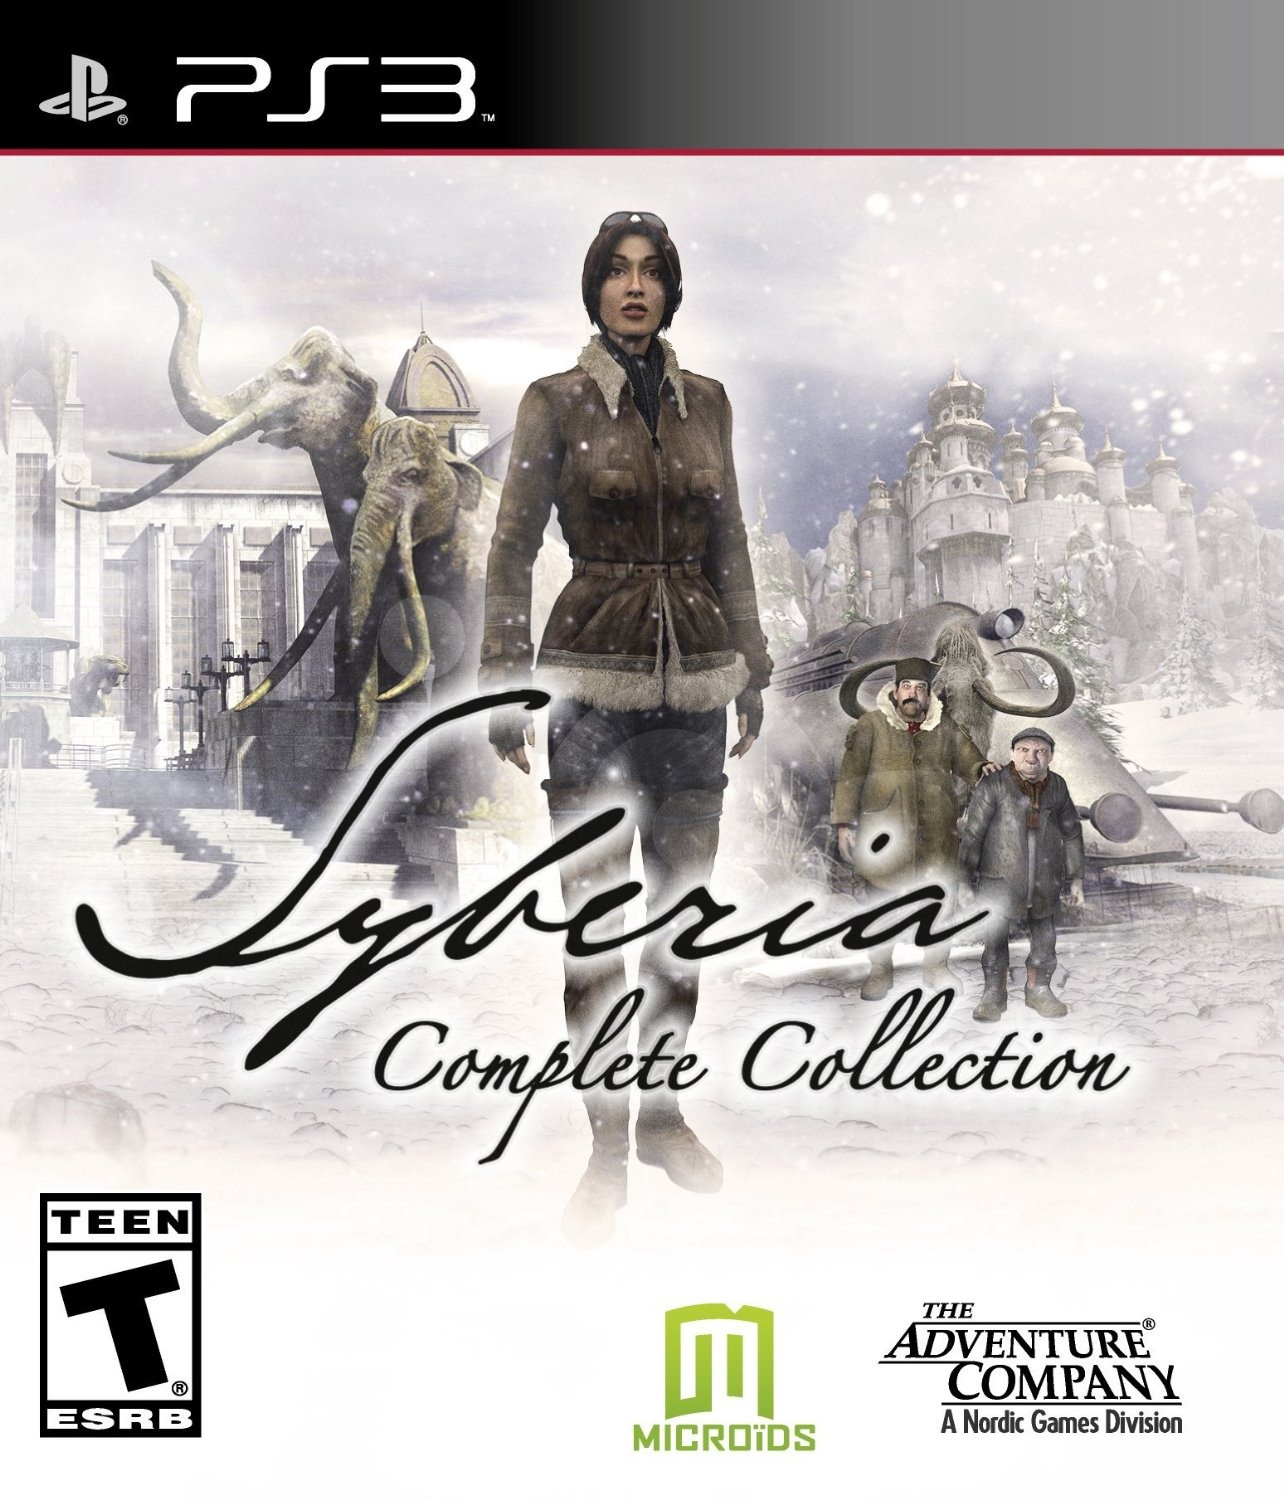 Microids Syberia Complete Collection PS3 Playstation 3 Game